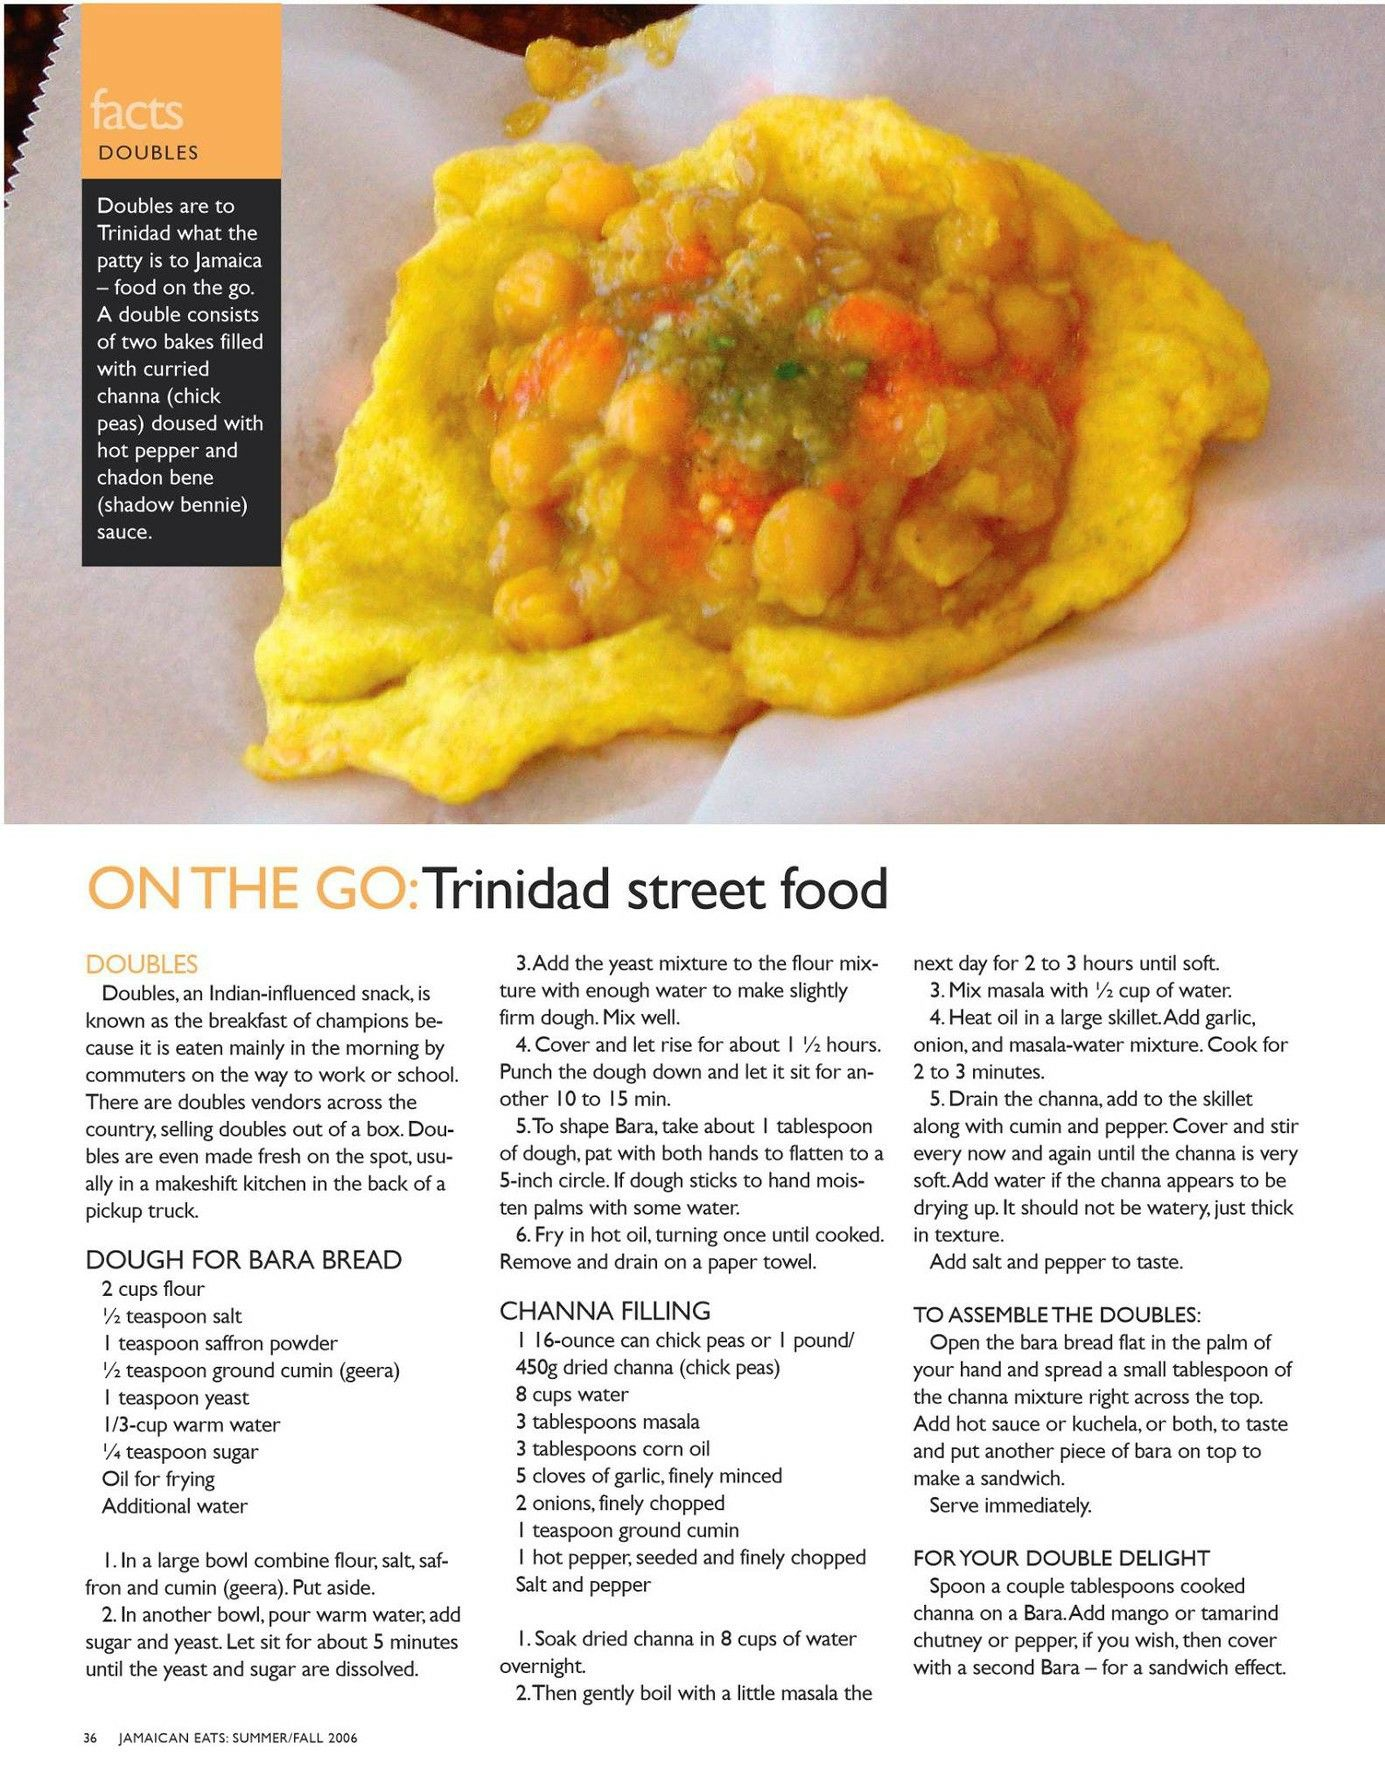 Pin by kimberly ganger on delicious recipes pinterest caribbean pin by kimberly ganger on delicious recipes pinterest caribbean caribbean food and caribbean recipes forumfinder Images